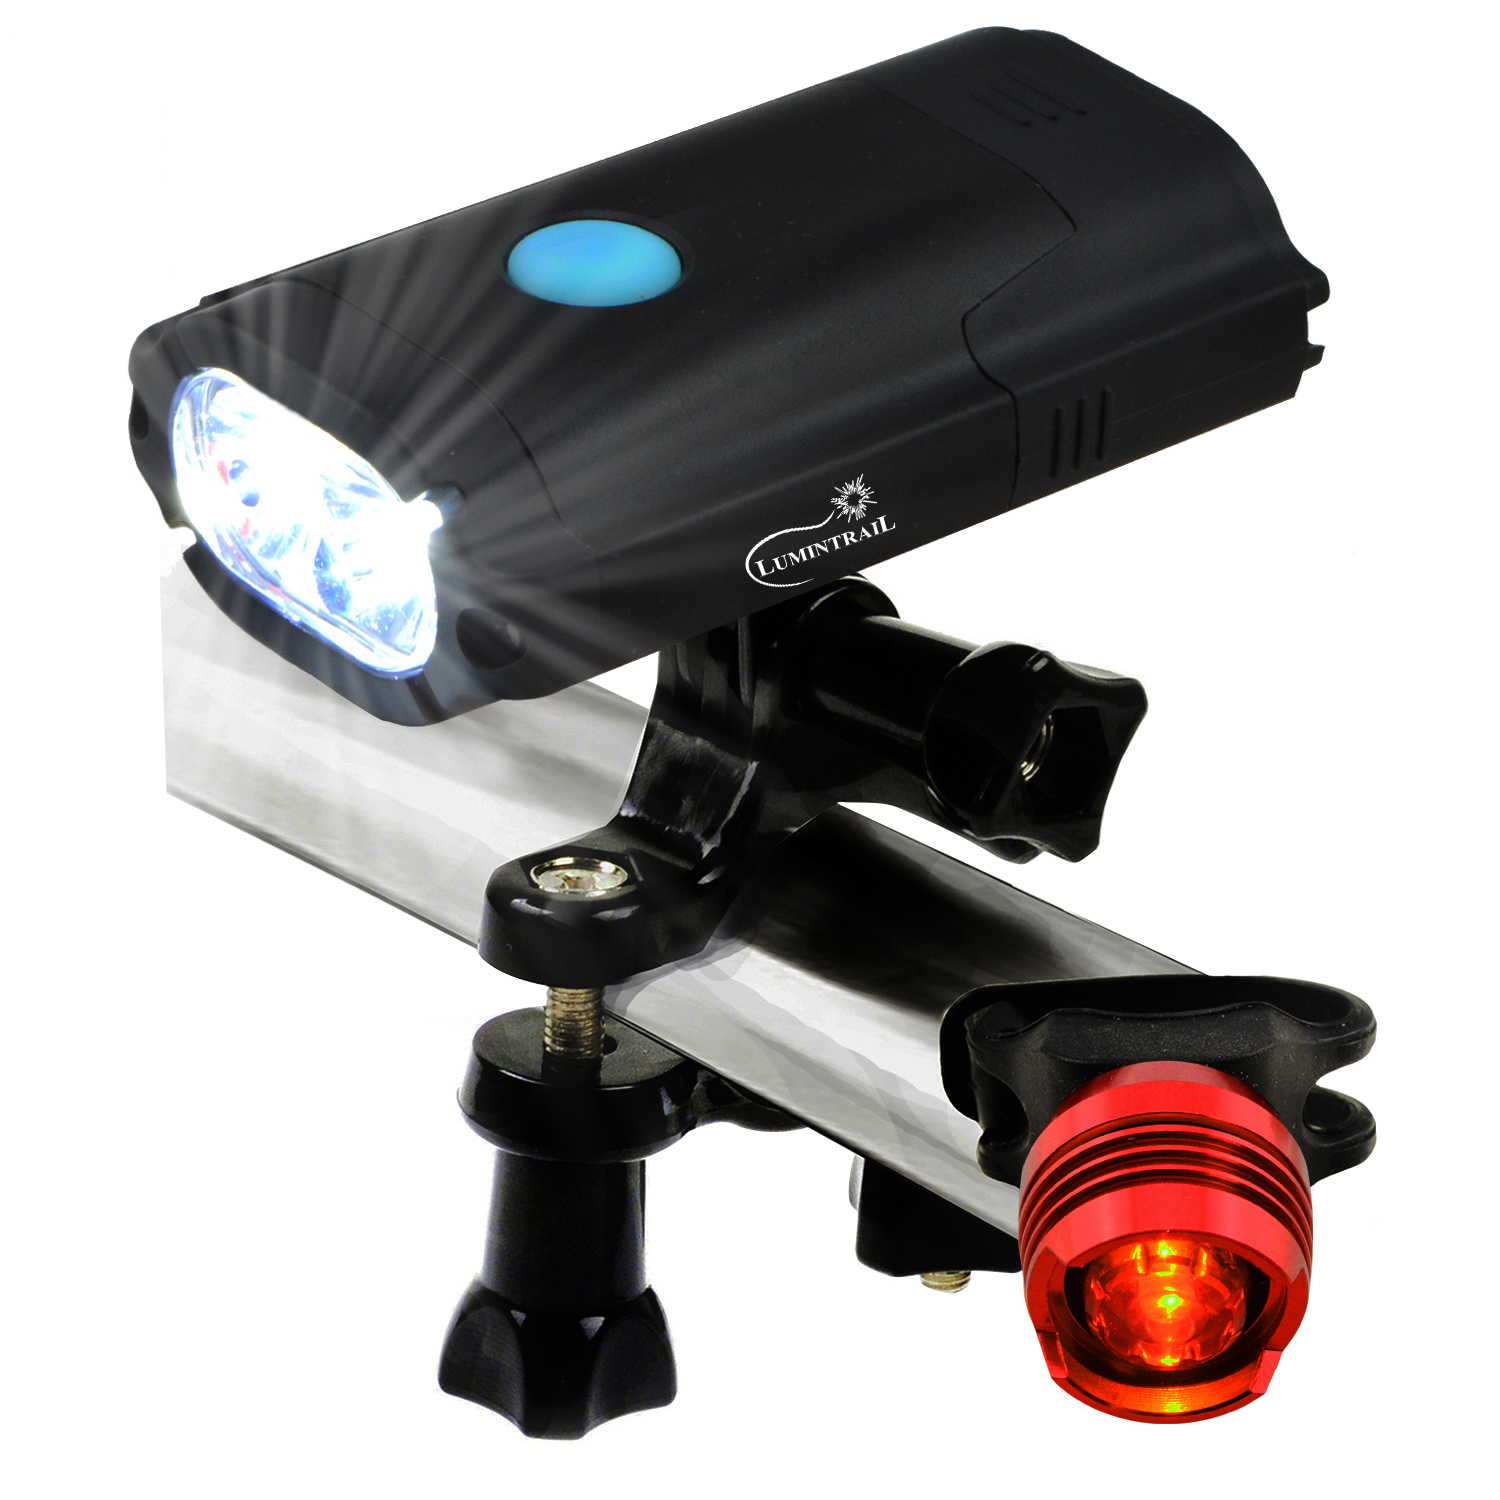 Lumintrail LTC-50 USB Rechargeable 800 Lumen LED Bike Headlight -Taillight Set - Black